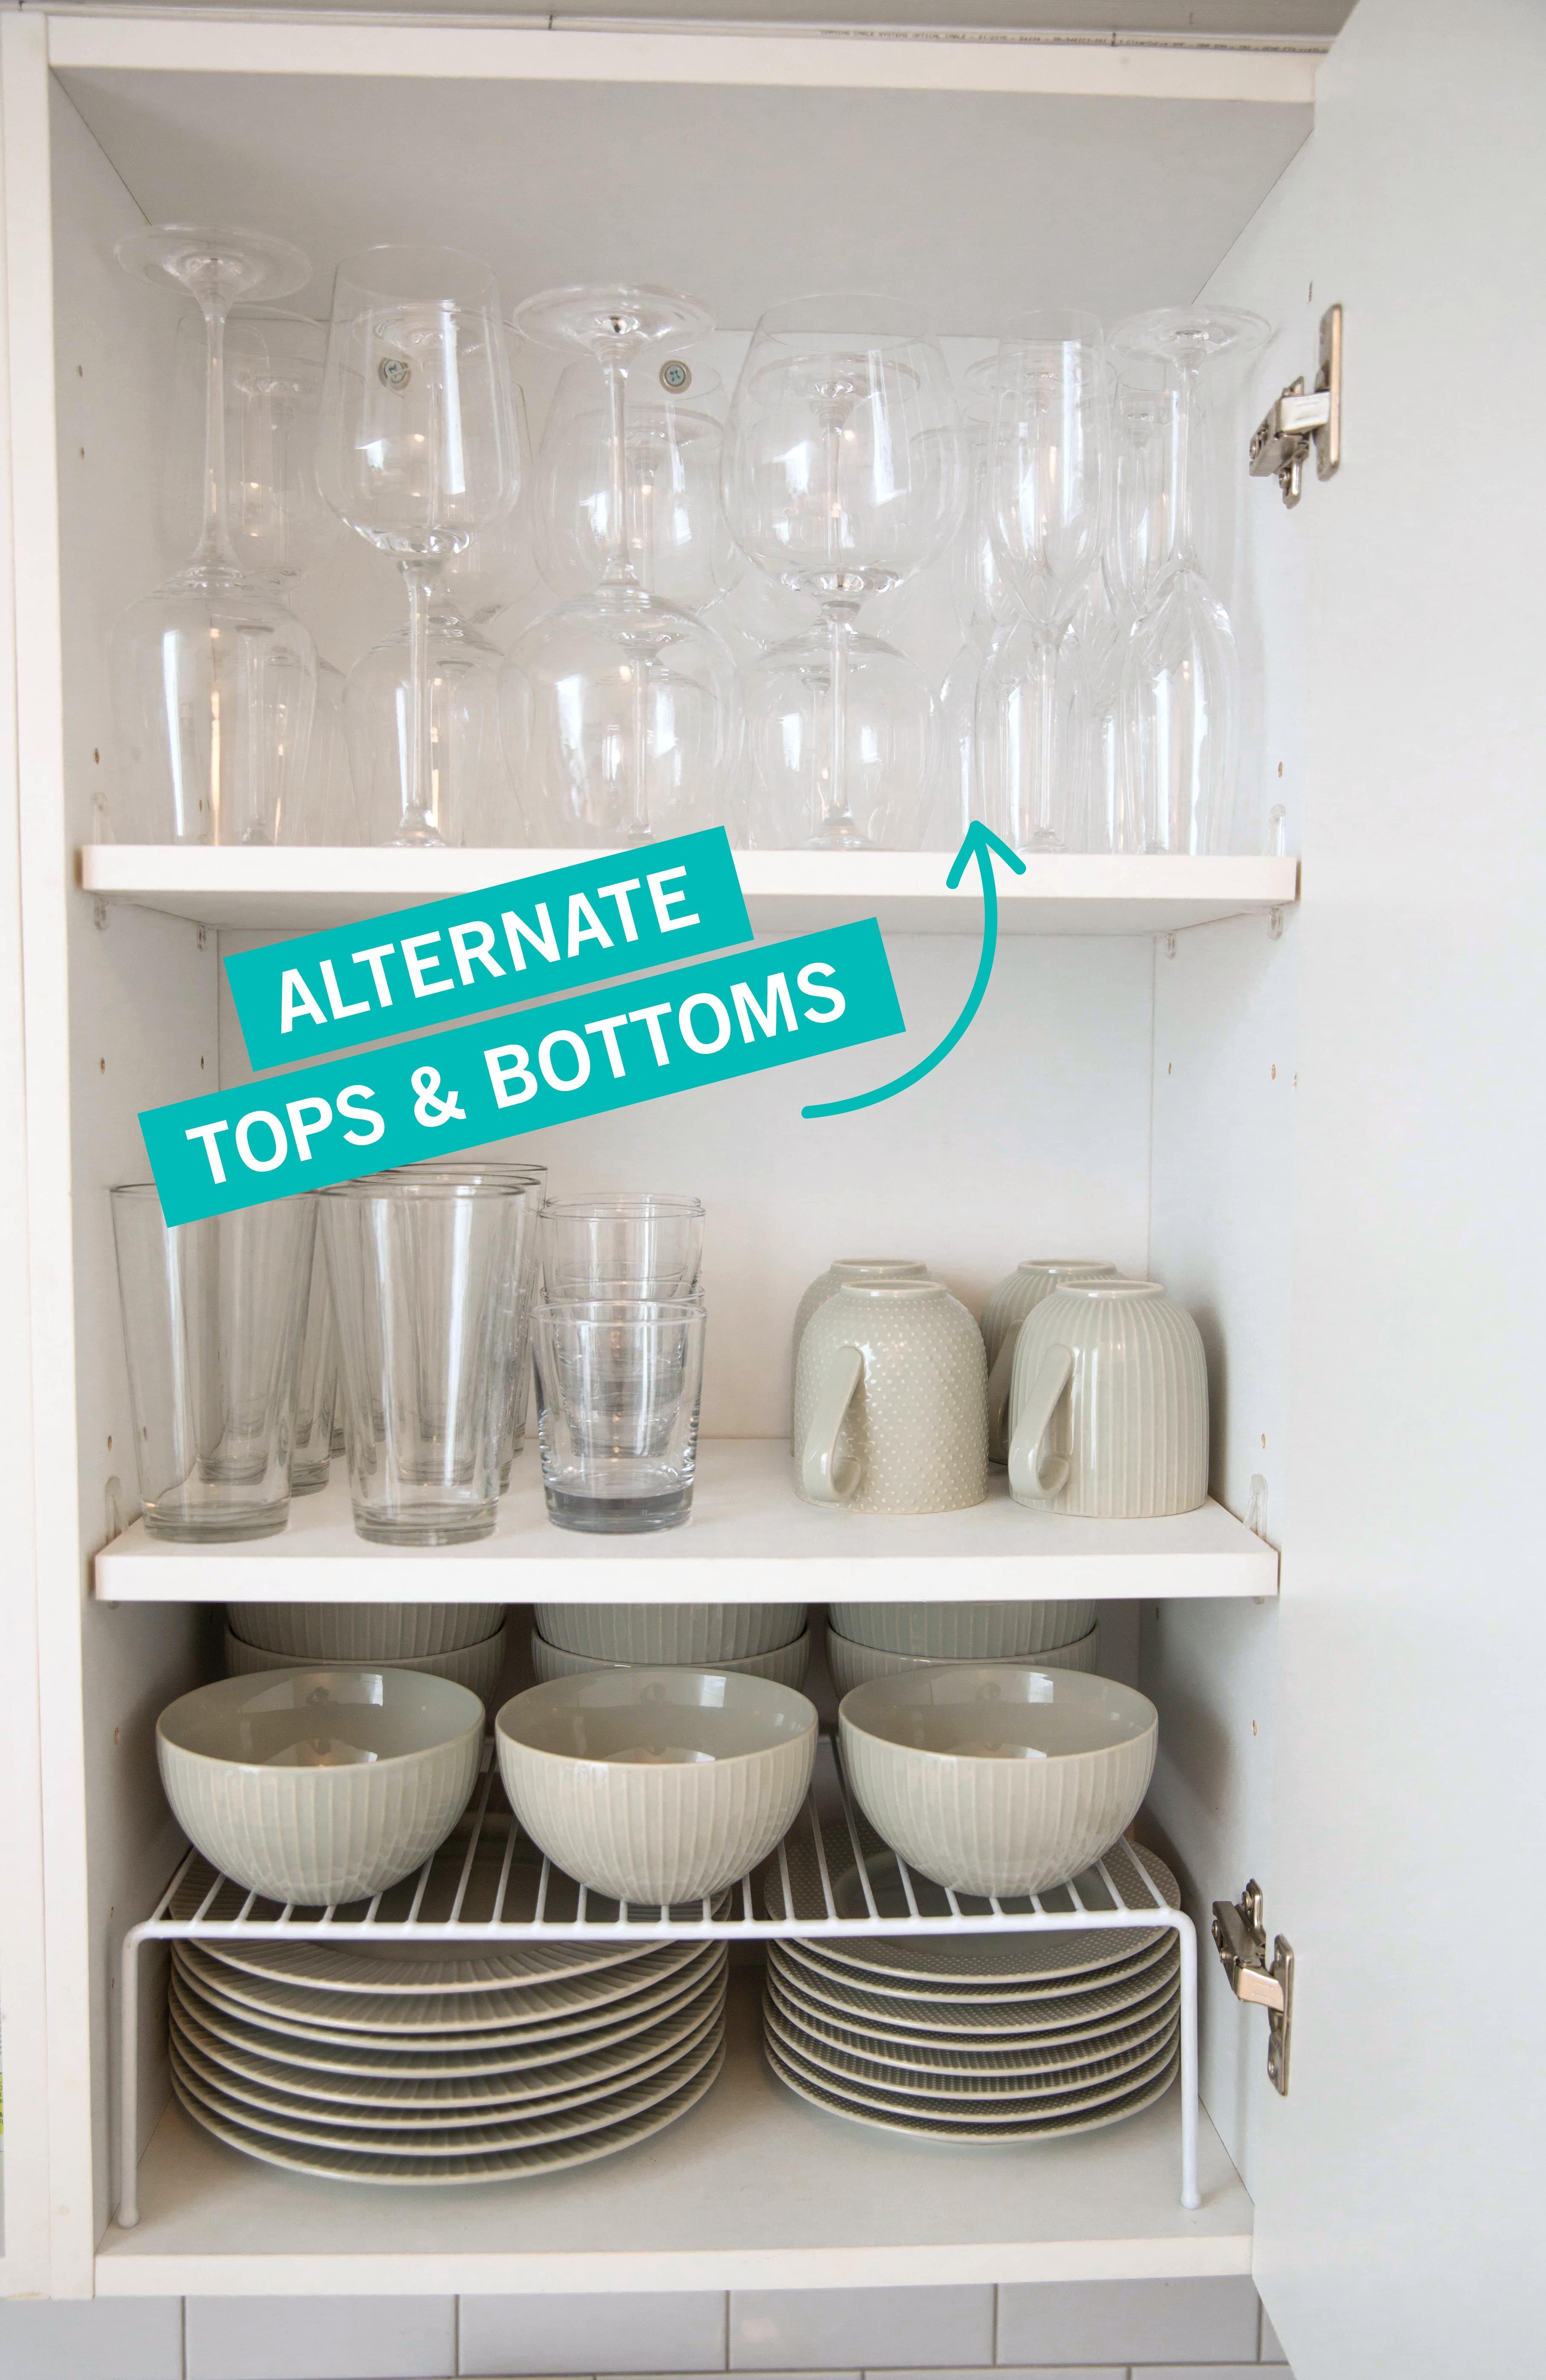 These Kitchen Organization Before And After Photos Will Delight